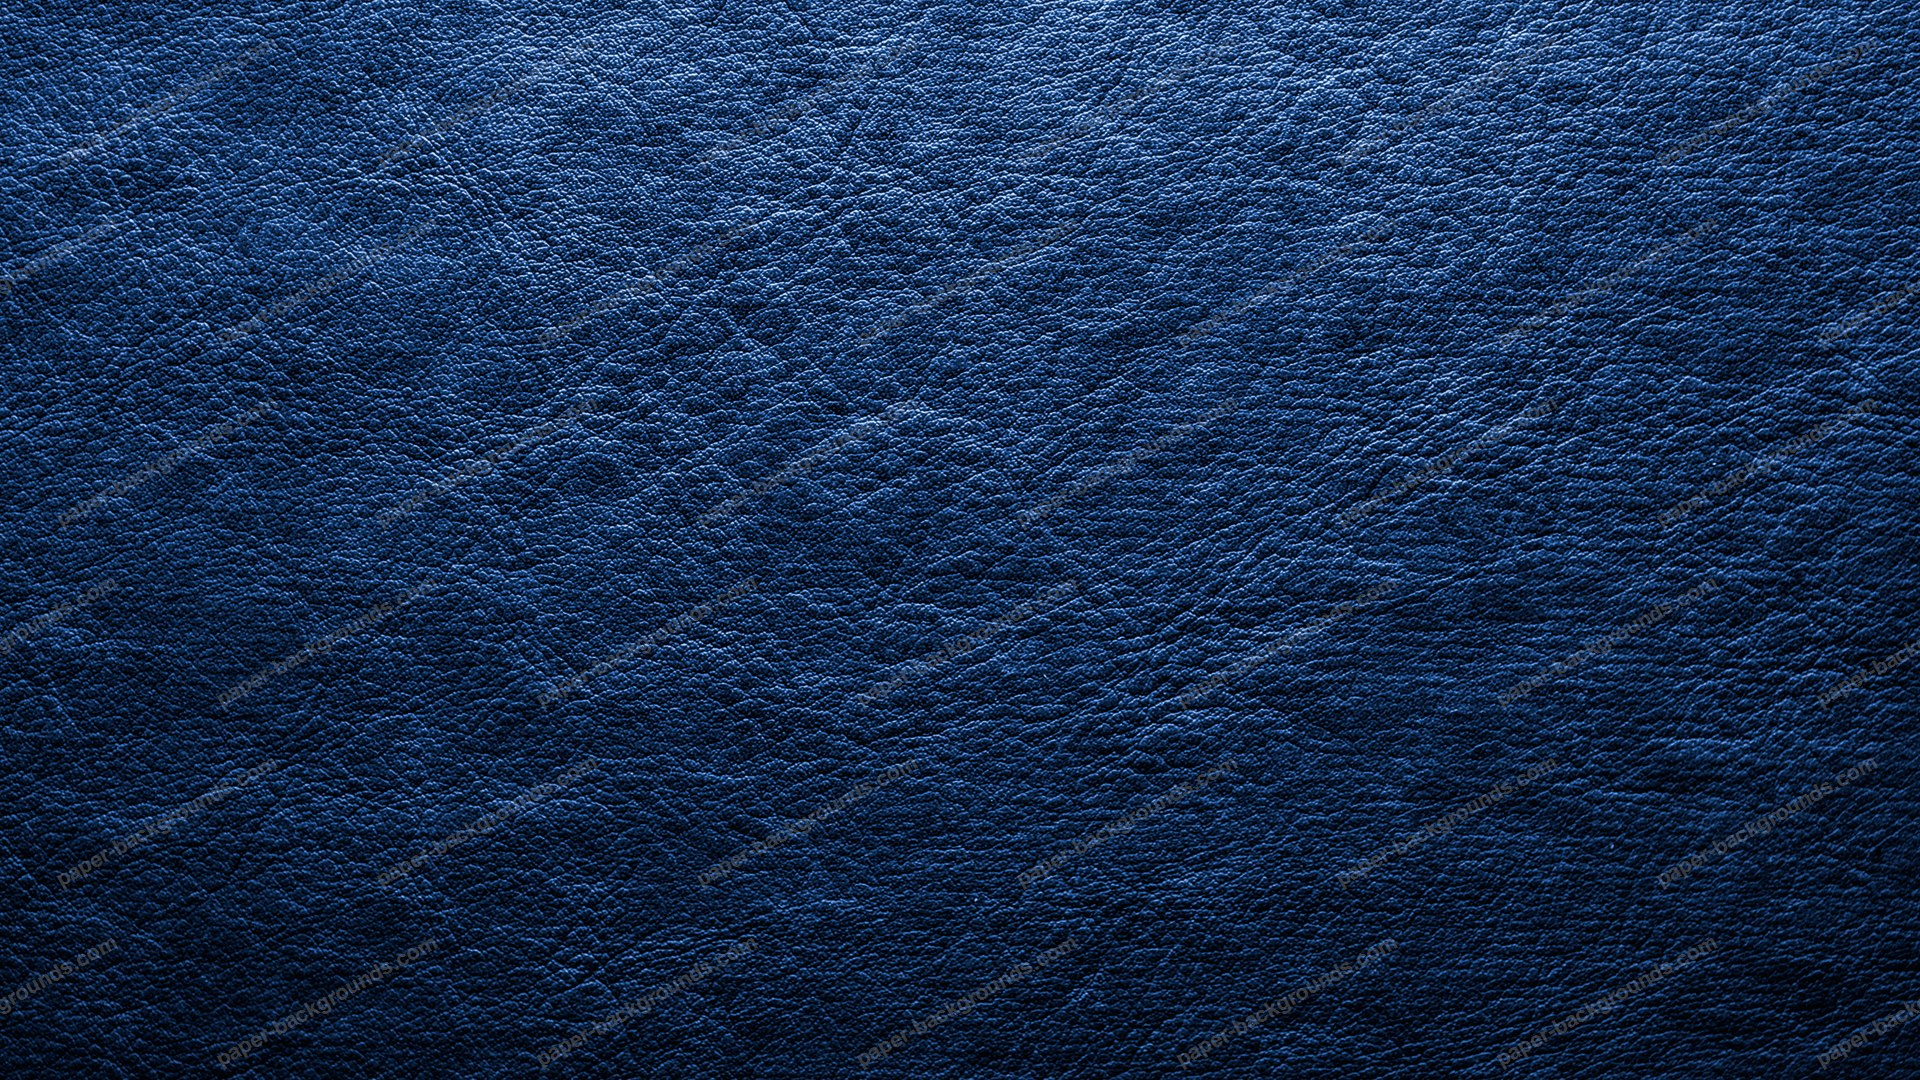 Paper Backgrounds Dark Blue Leather Background 1920x1080